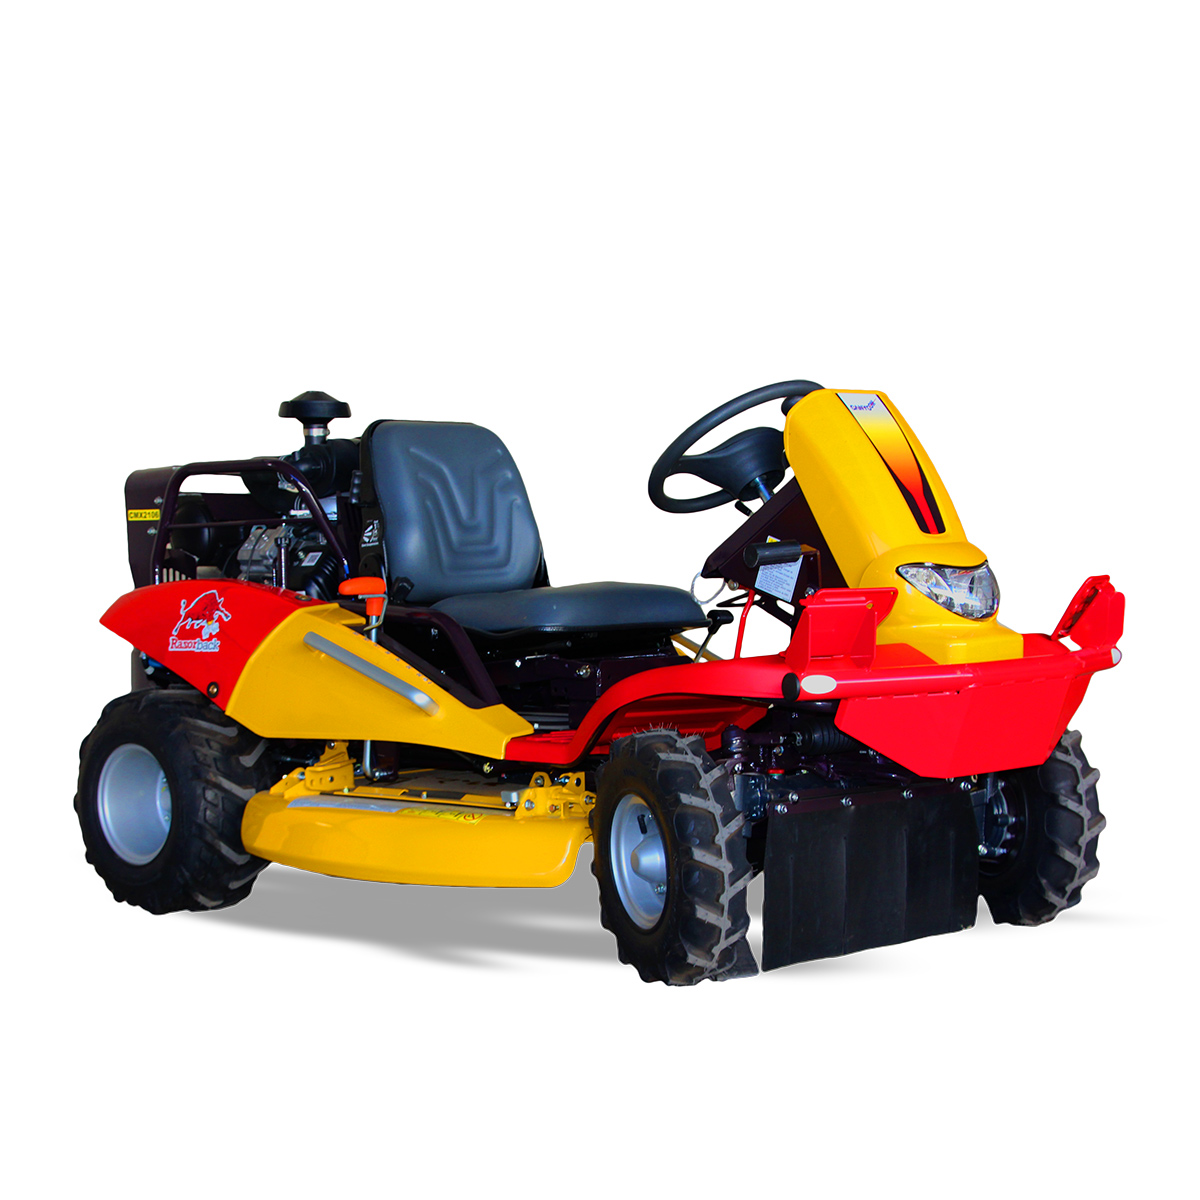 Razorback All Terrain Mower CMX2302 Contractor's Choice Mower